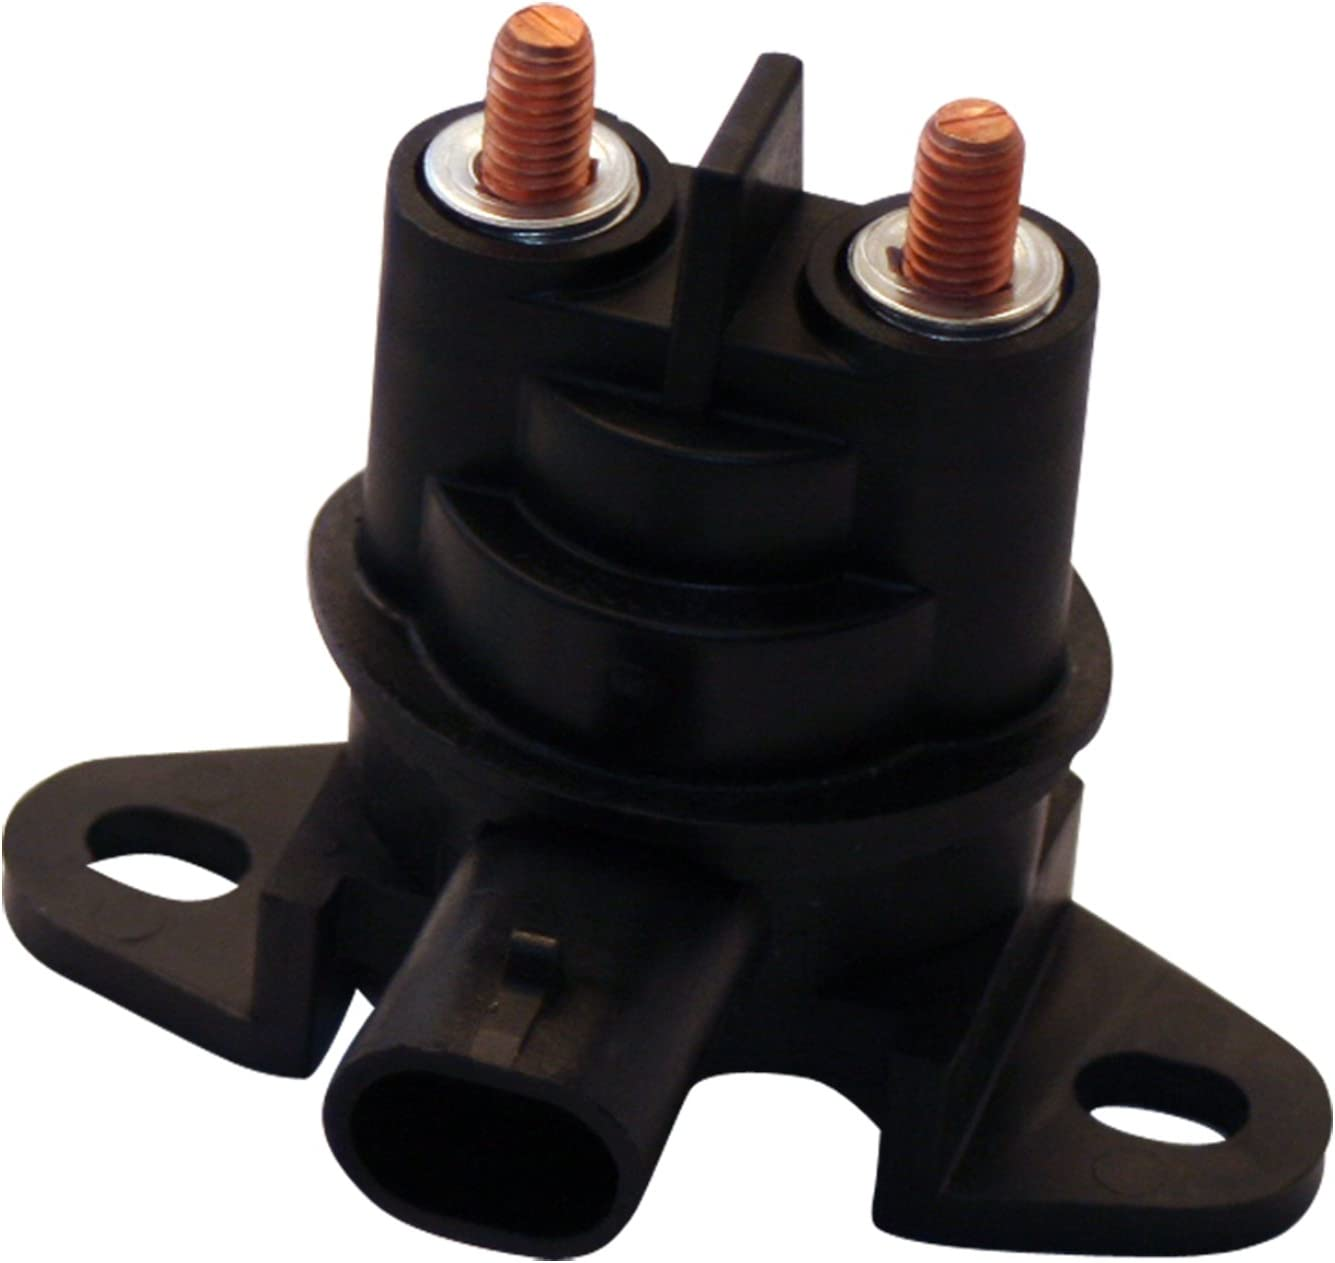 Replaces//Compatible With Sea-Doo Part Number 278001376 SEADOO Starter Solenoid GS GSX GTI GTS GTX LRV RX SPX XP RFI DI Ltd